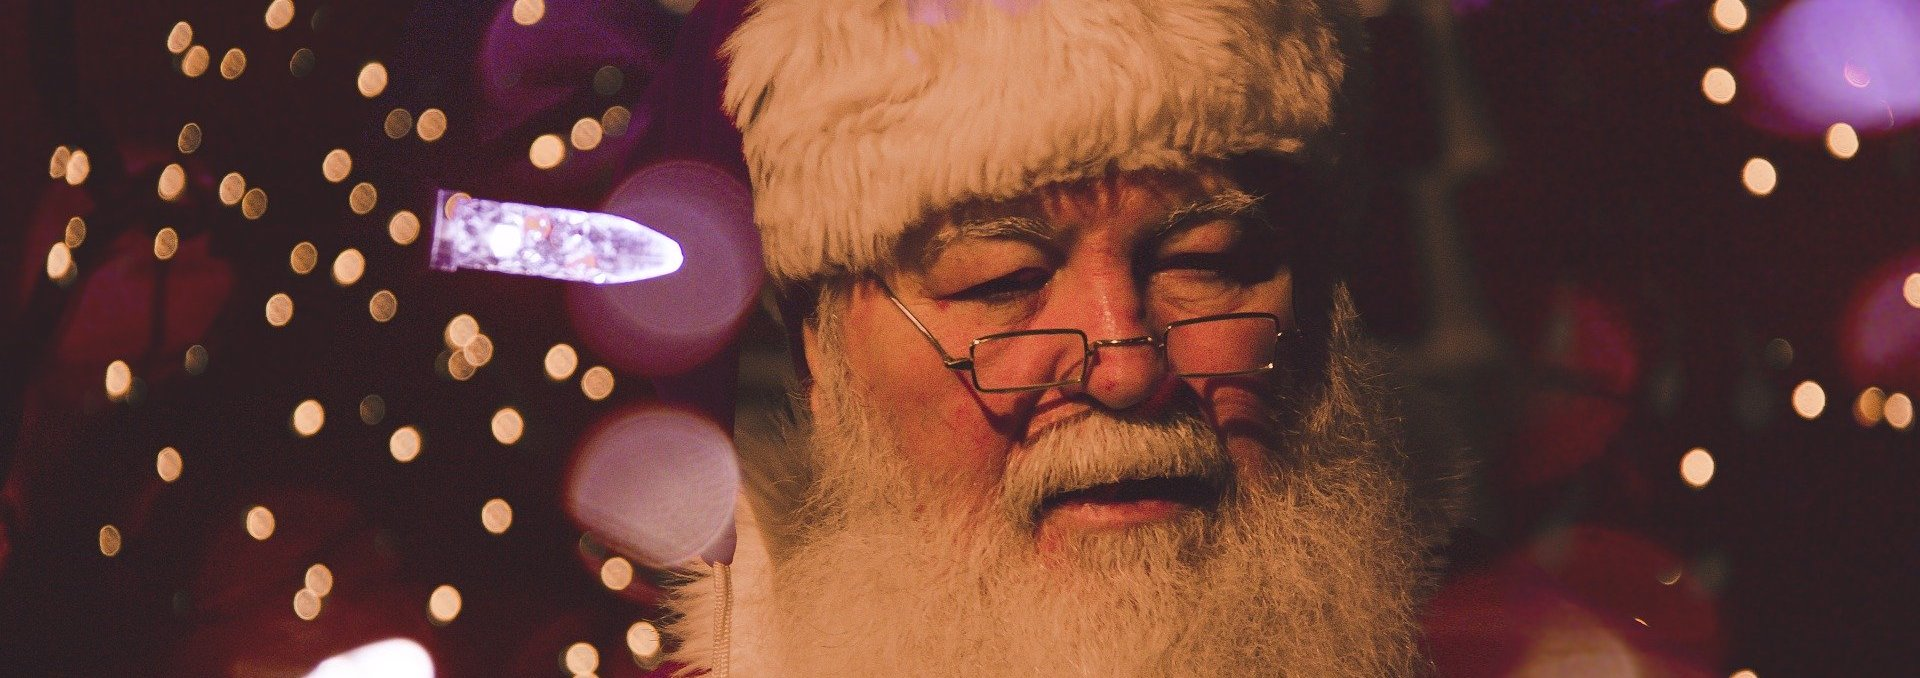 Kids, Adults & Seniors can text Santa for all sorts of things